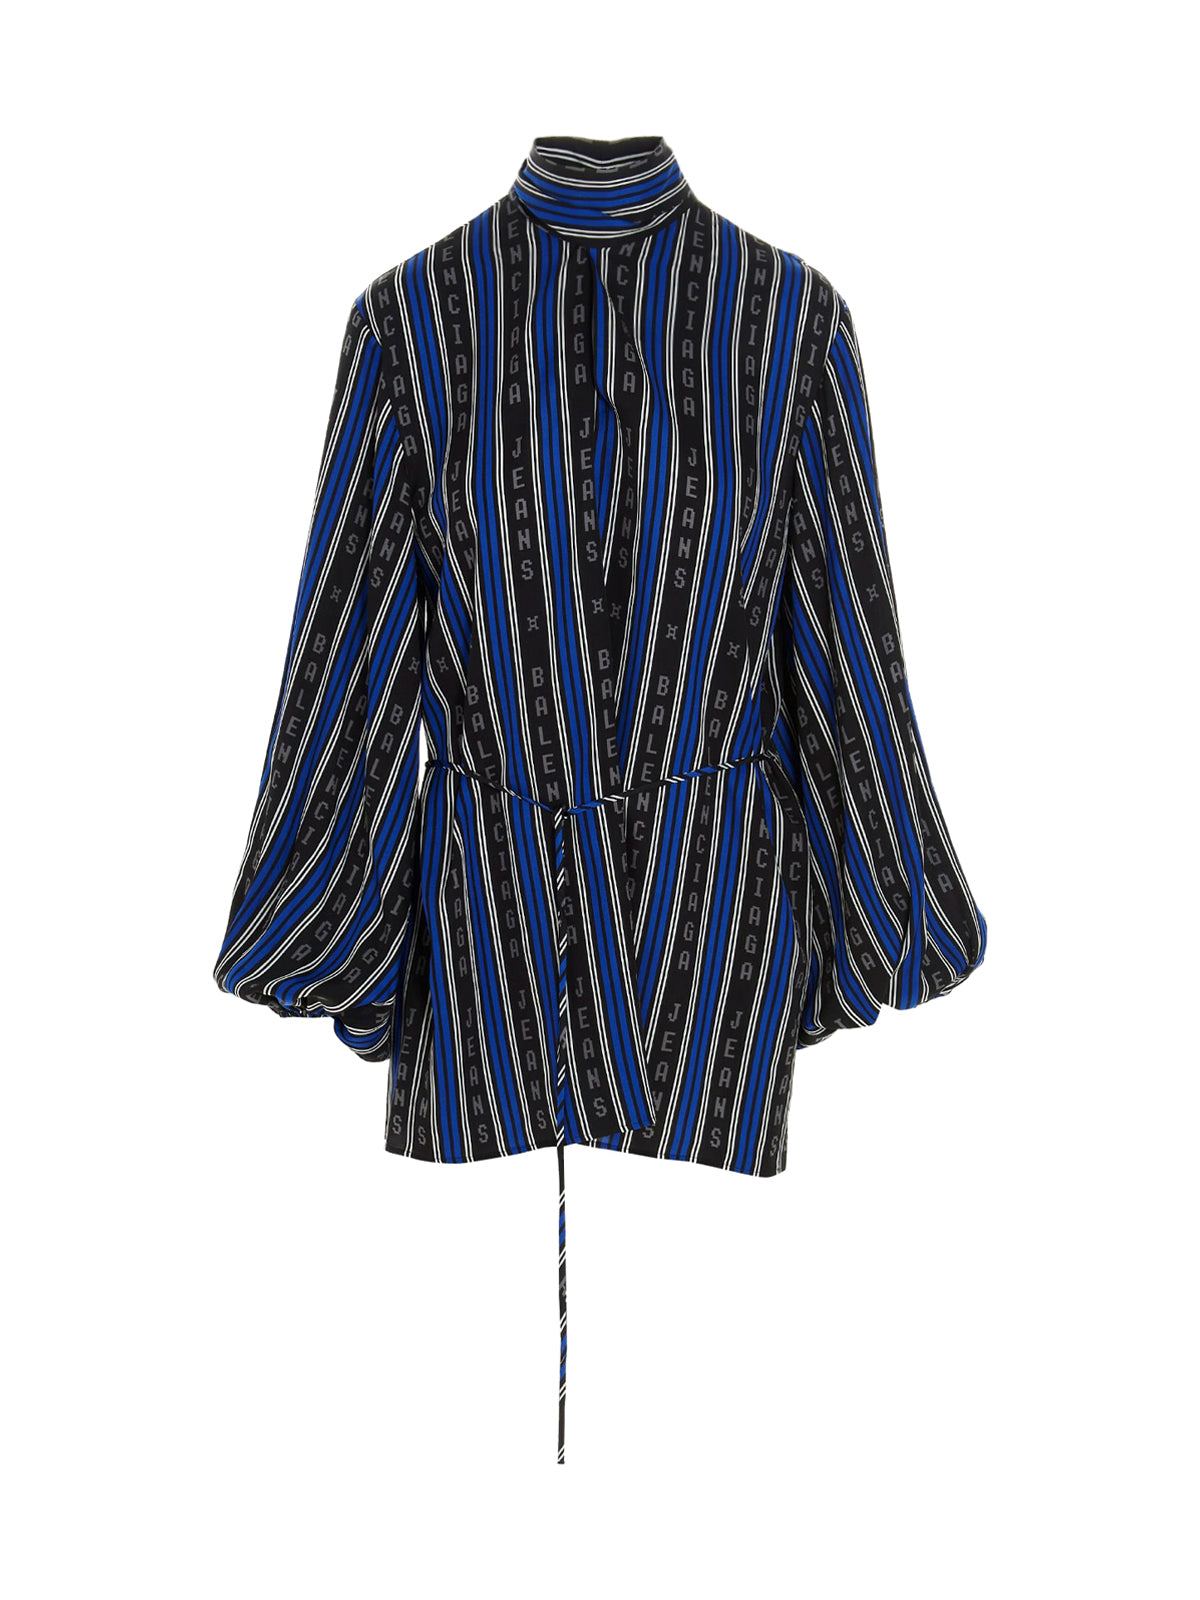 Striped blouse with logo